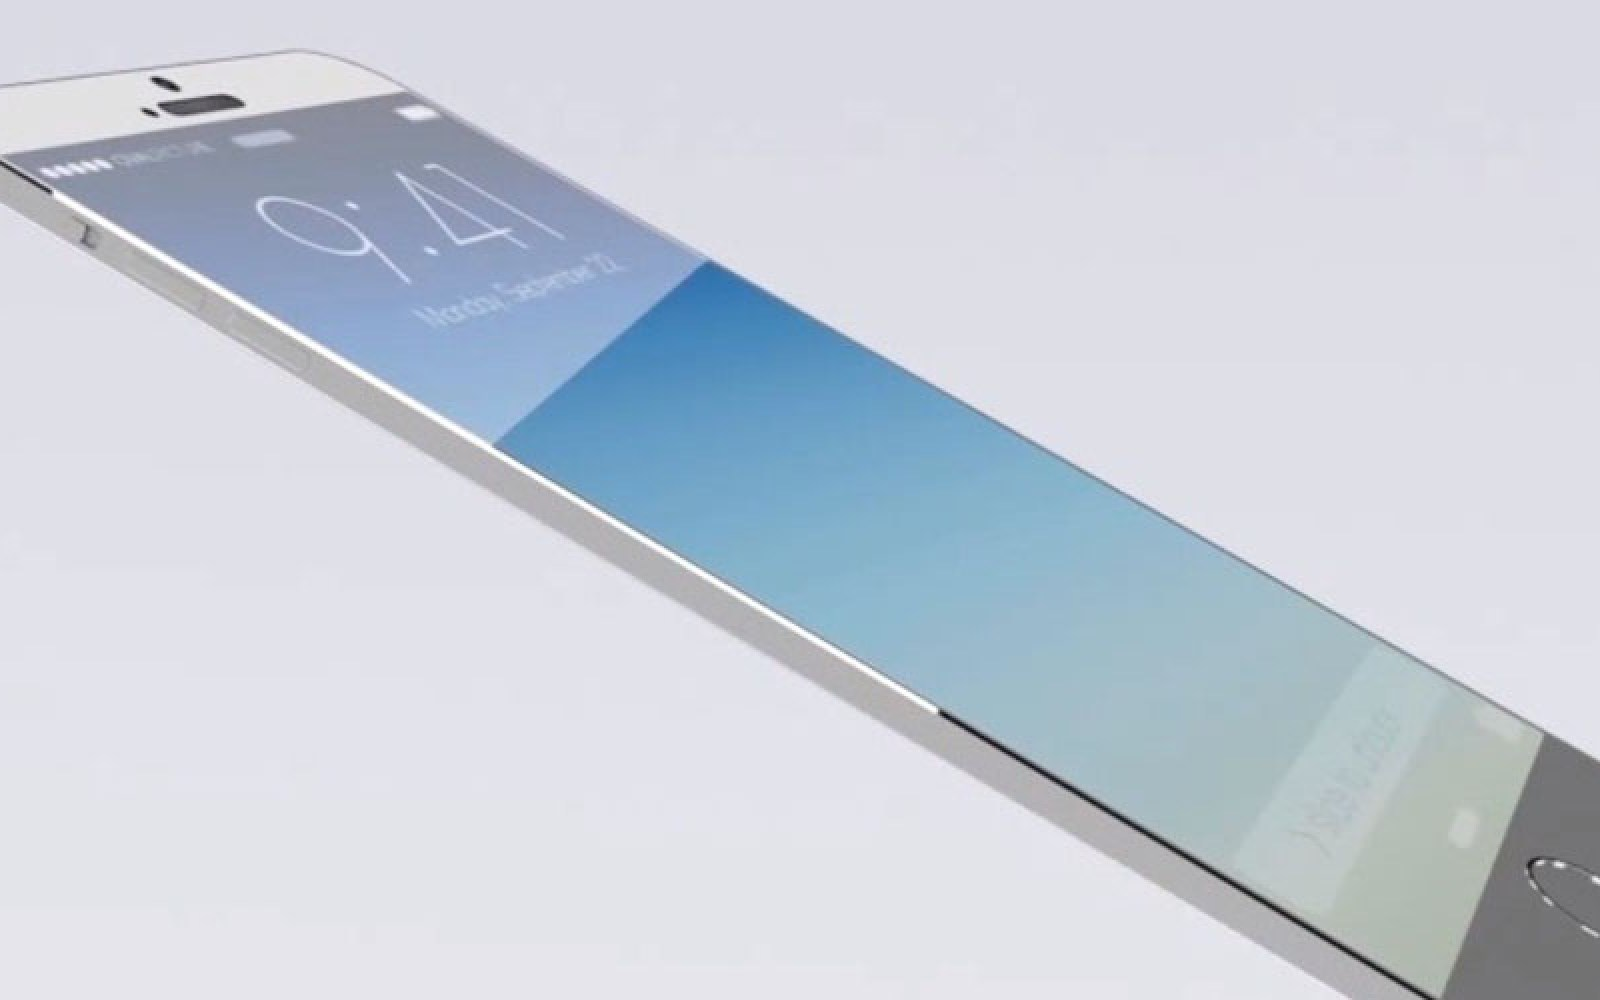 Apple negotiating with Sharp to supply OLED displays for next-generation 'iPhone 8' in 2017